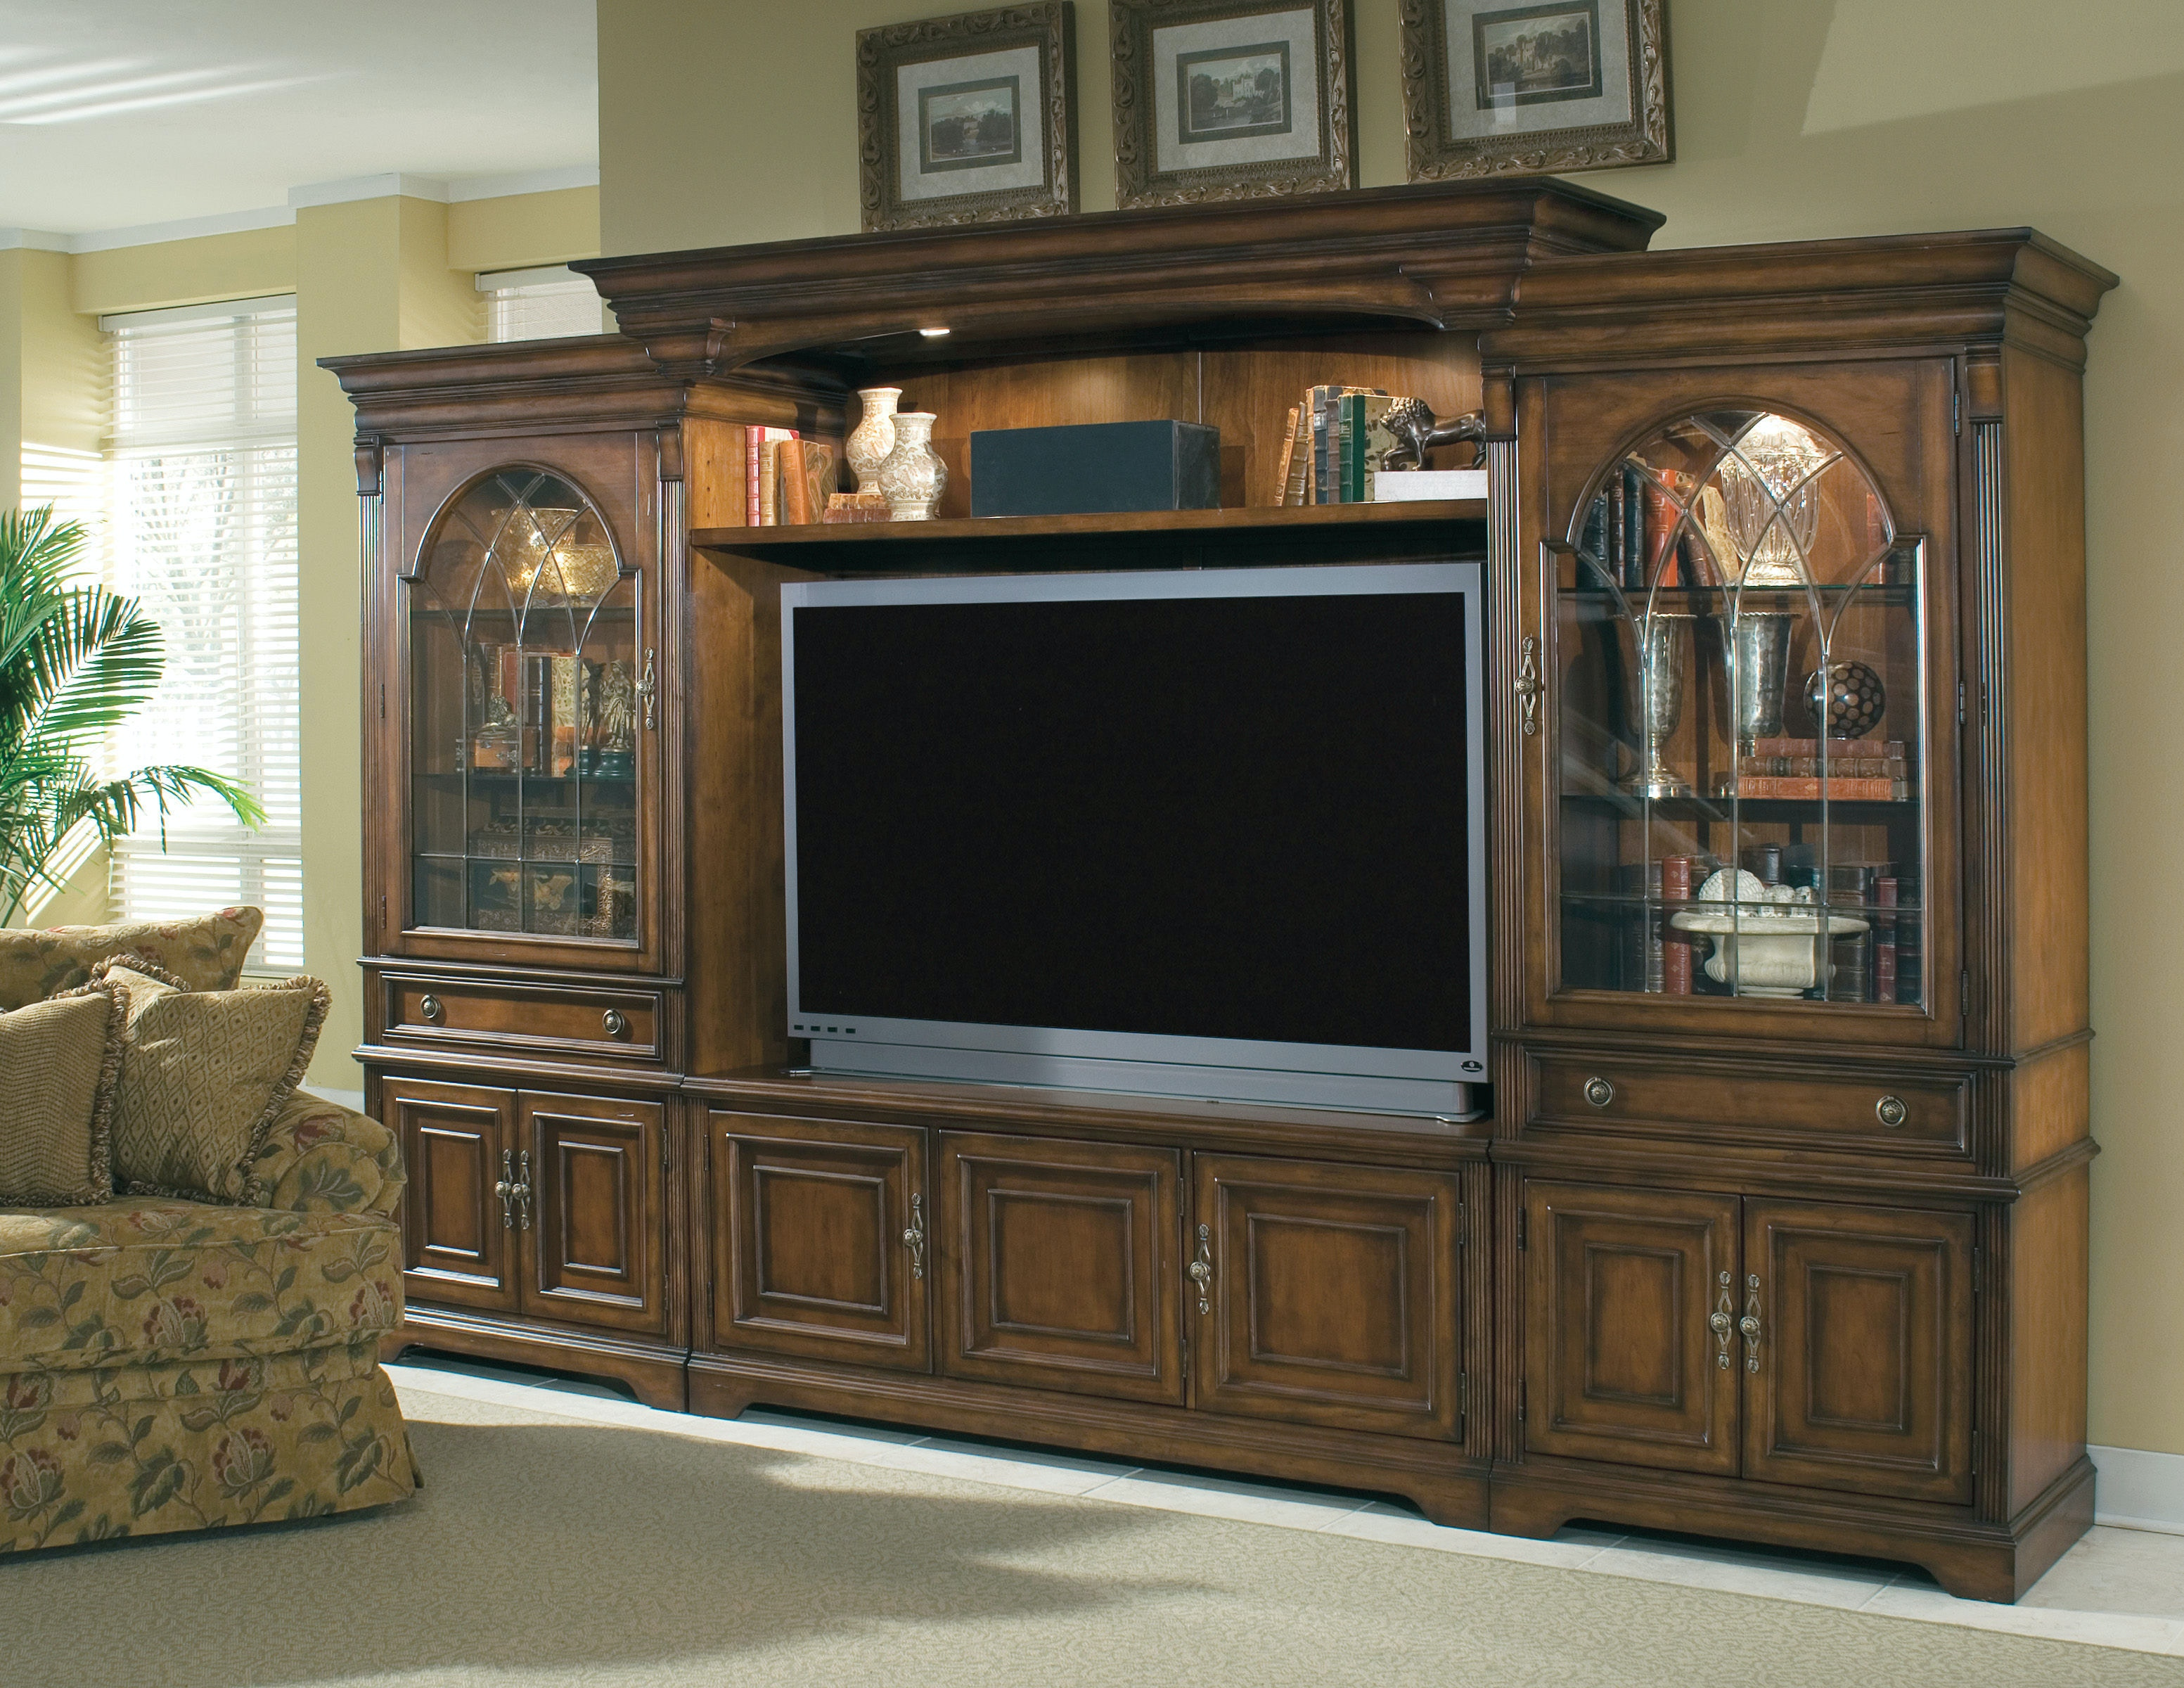 Exceptional Hooker Furniture Brookhaven Home Theater Group 281 70 222